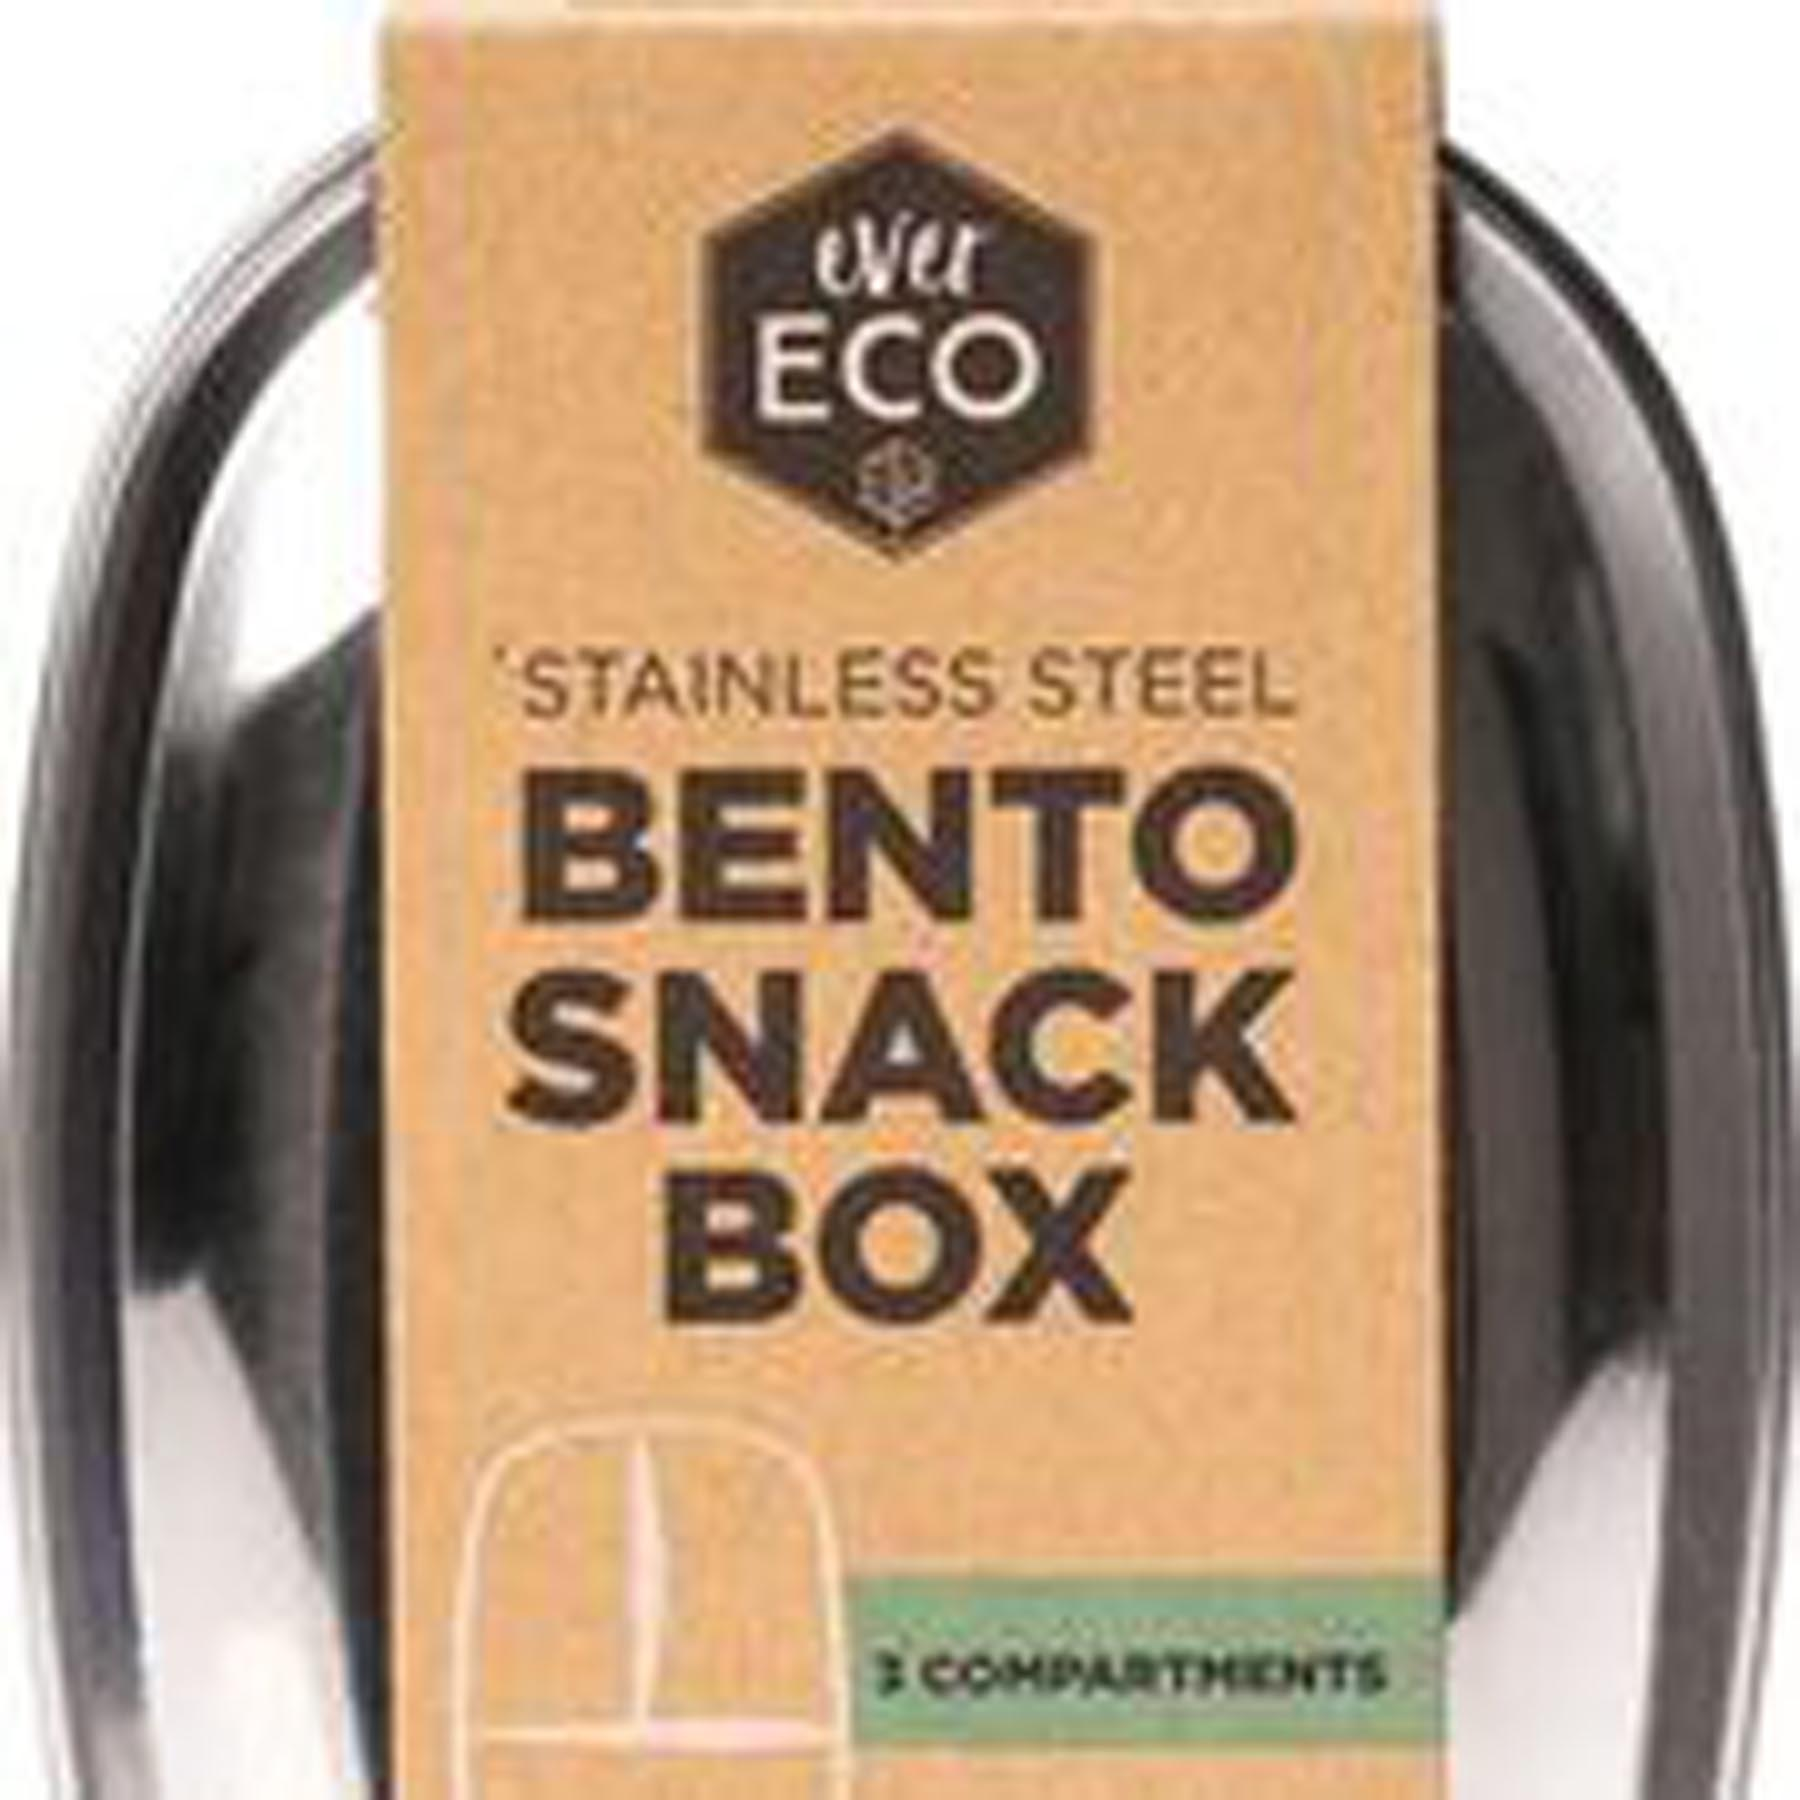 EVER ECO BENTO SNACK BOX 3 COMPARTMENTS www.motherbynature.com.au